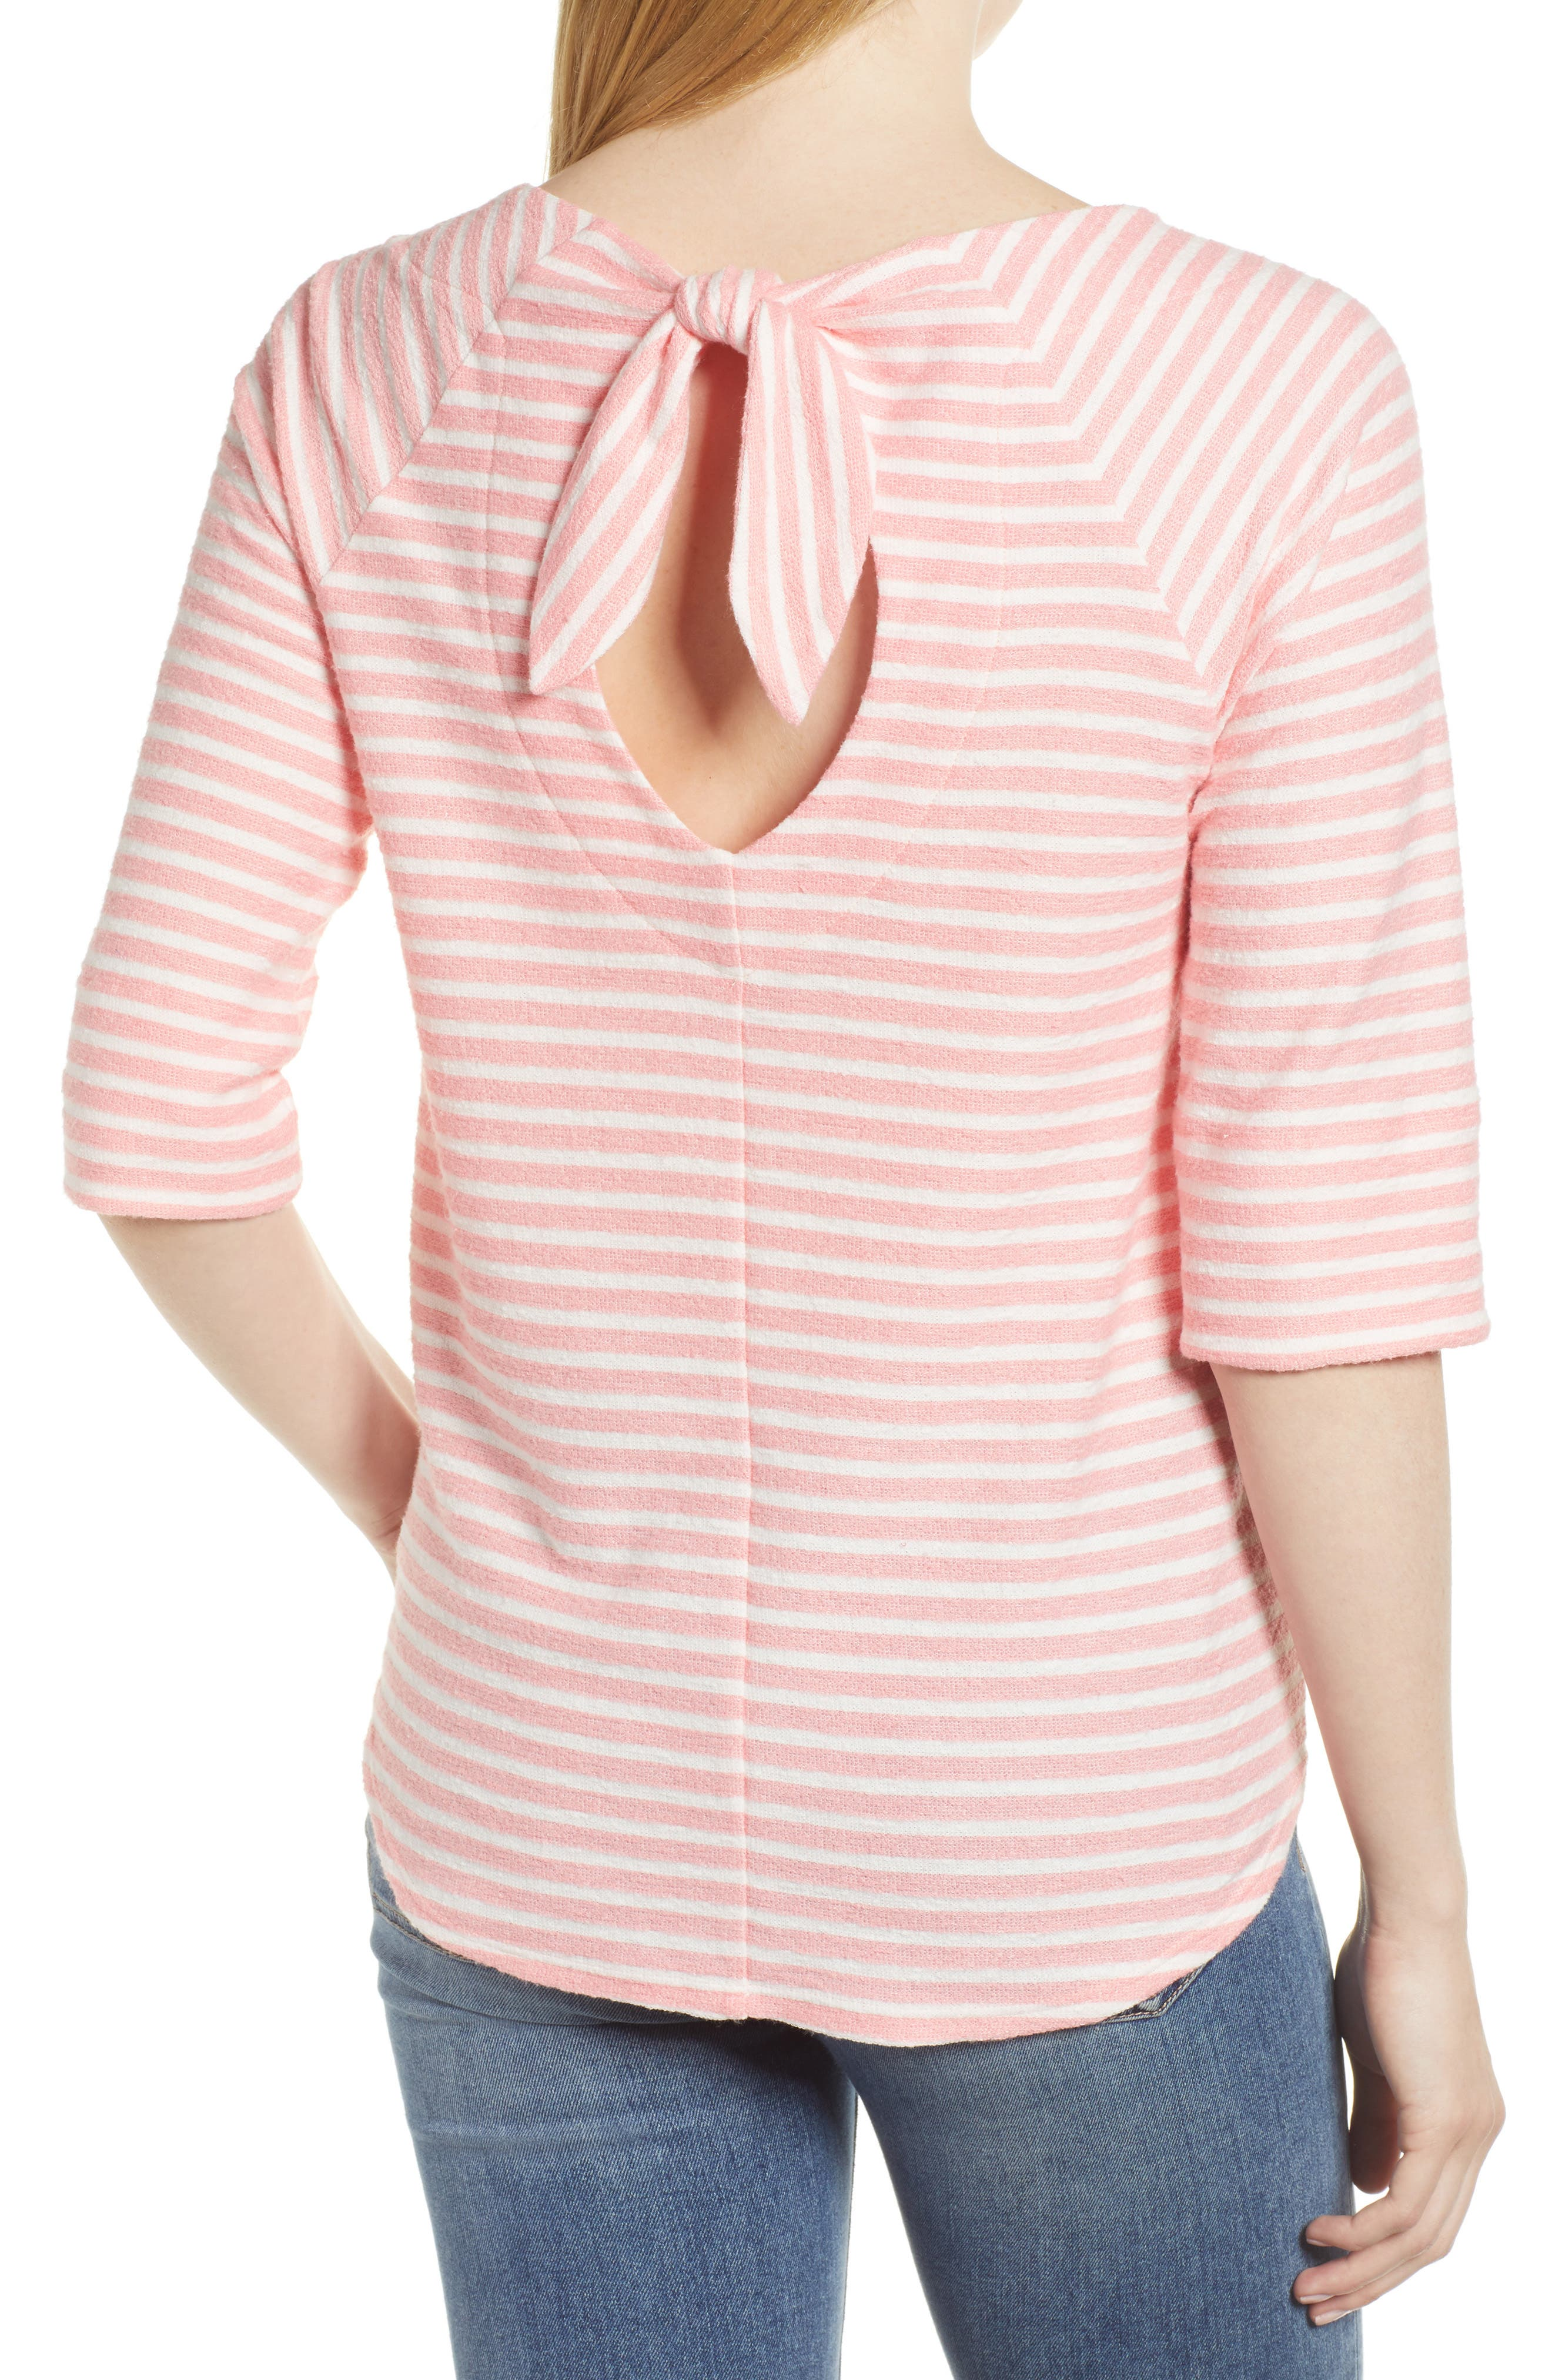 Tie Back Top,                             Alternate thumbnail 2, color,                             Coral Sugar/ White